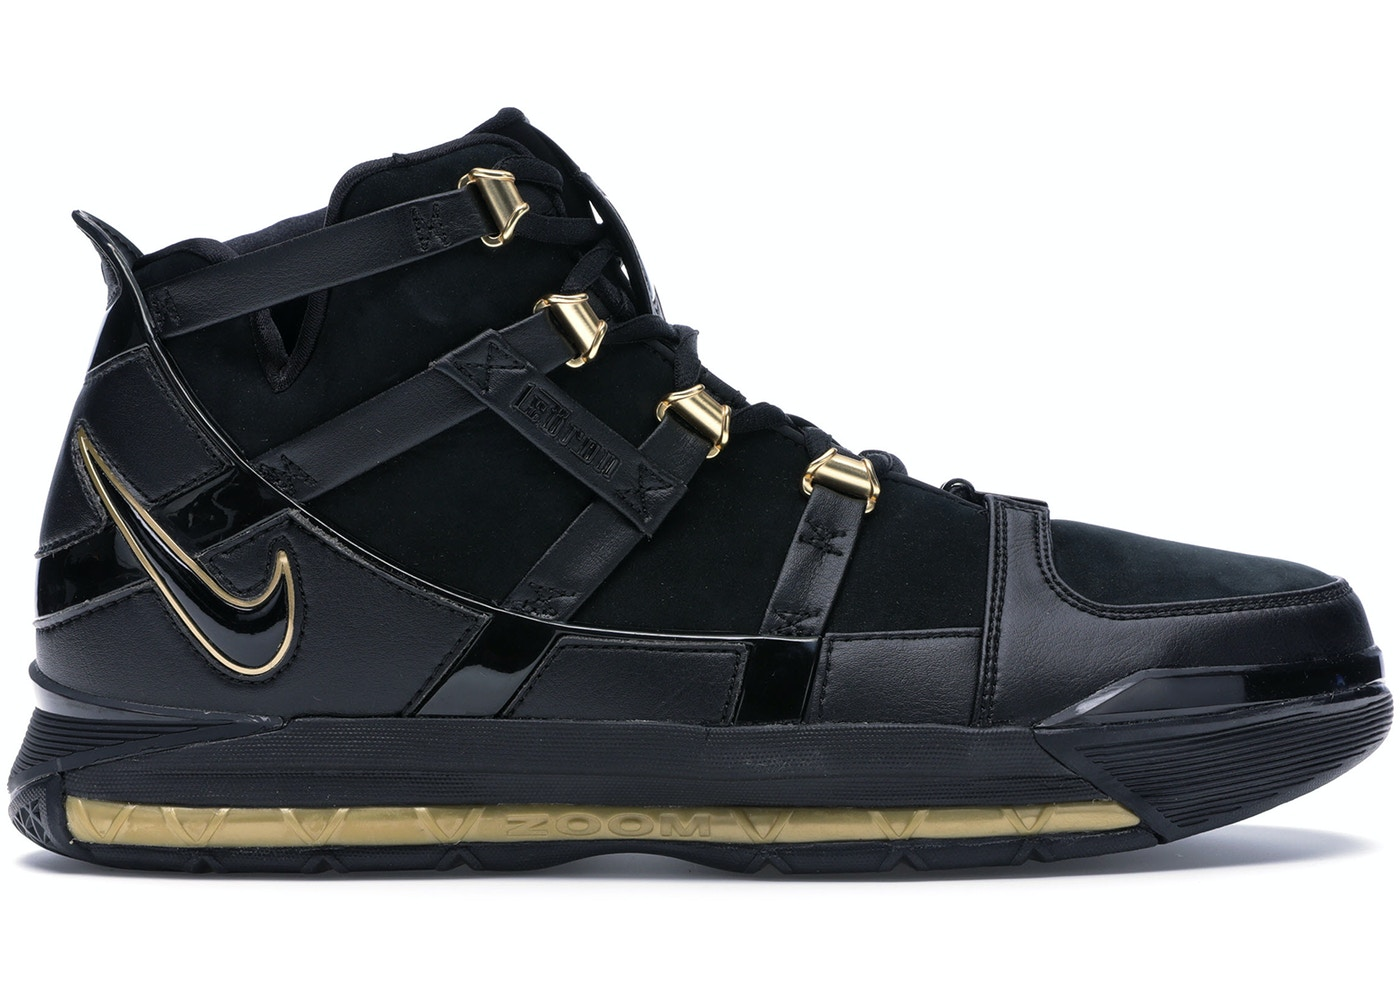 Nike LeBron Zoom 3 Black Metallic Gold - 312147-006 1d2e8d060